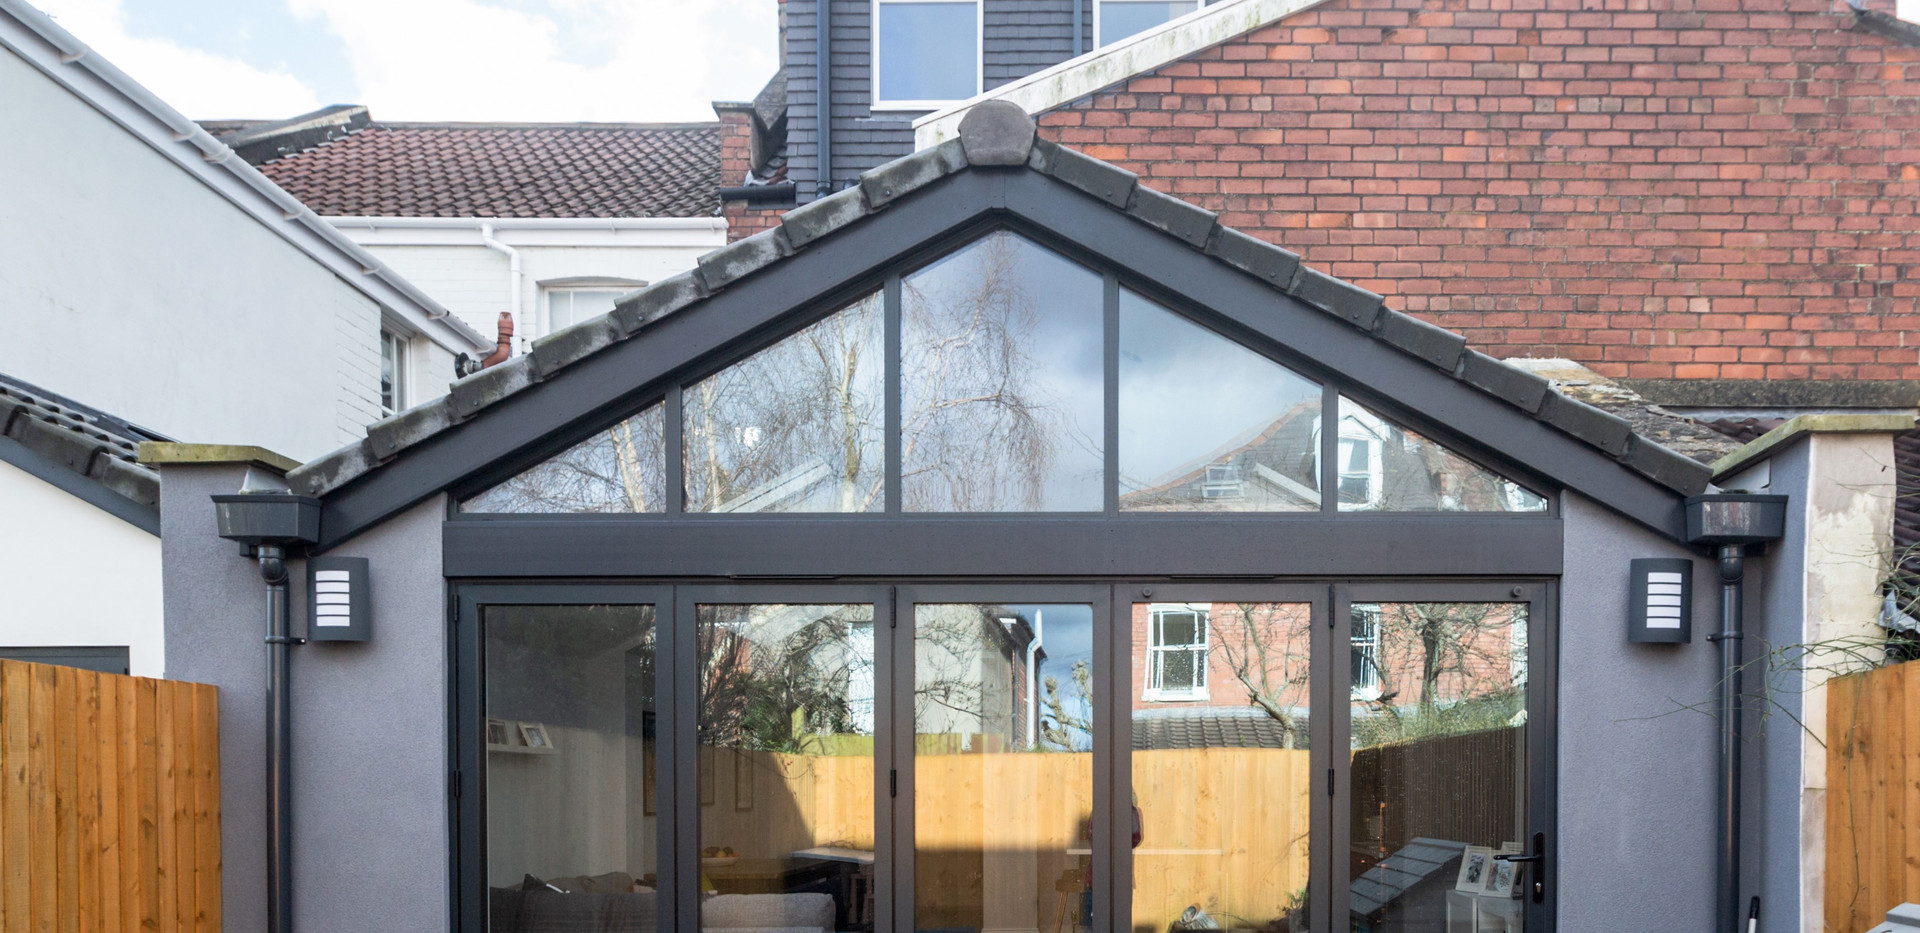 Completed rear view with glazed gable